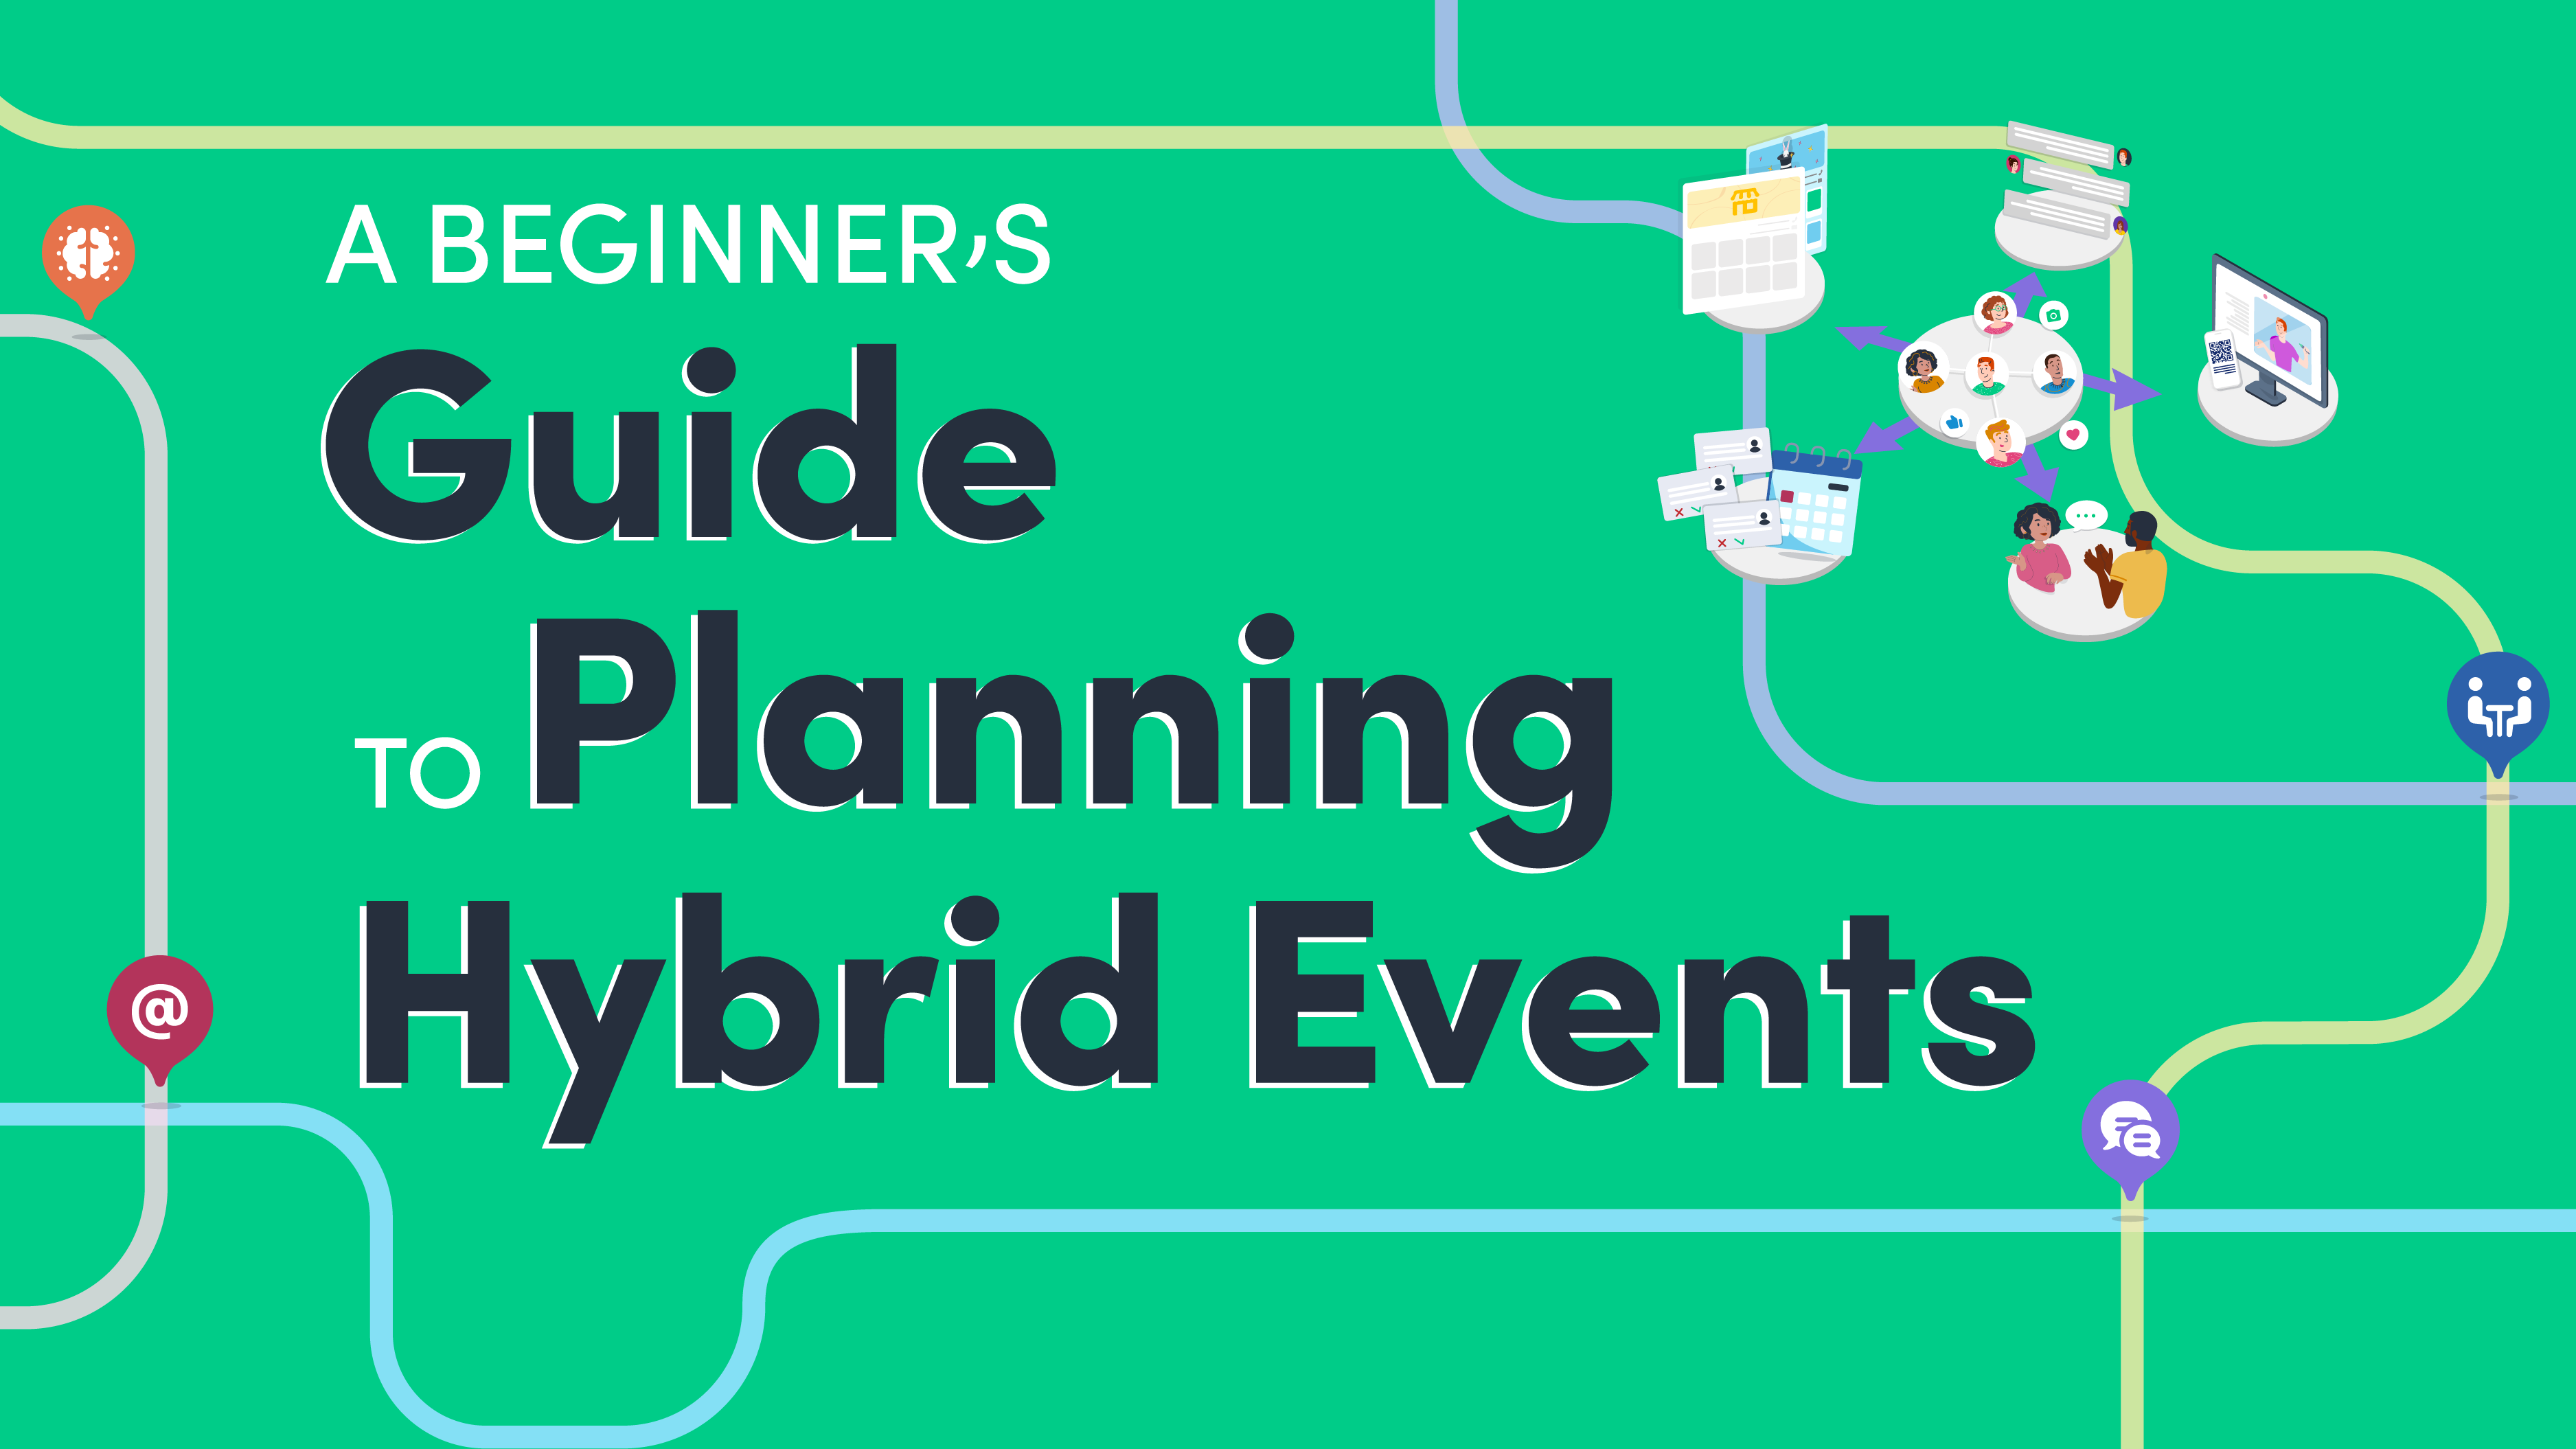 A Beginner's Guide to Planning Hybrid Events